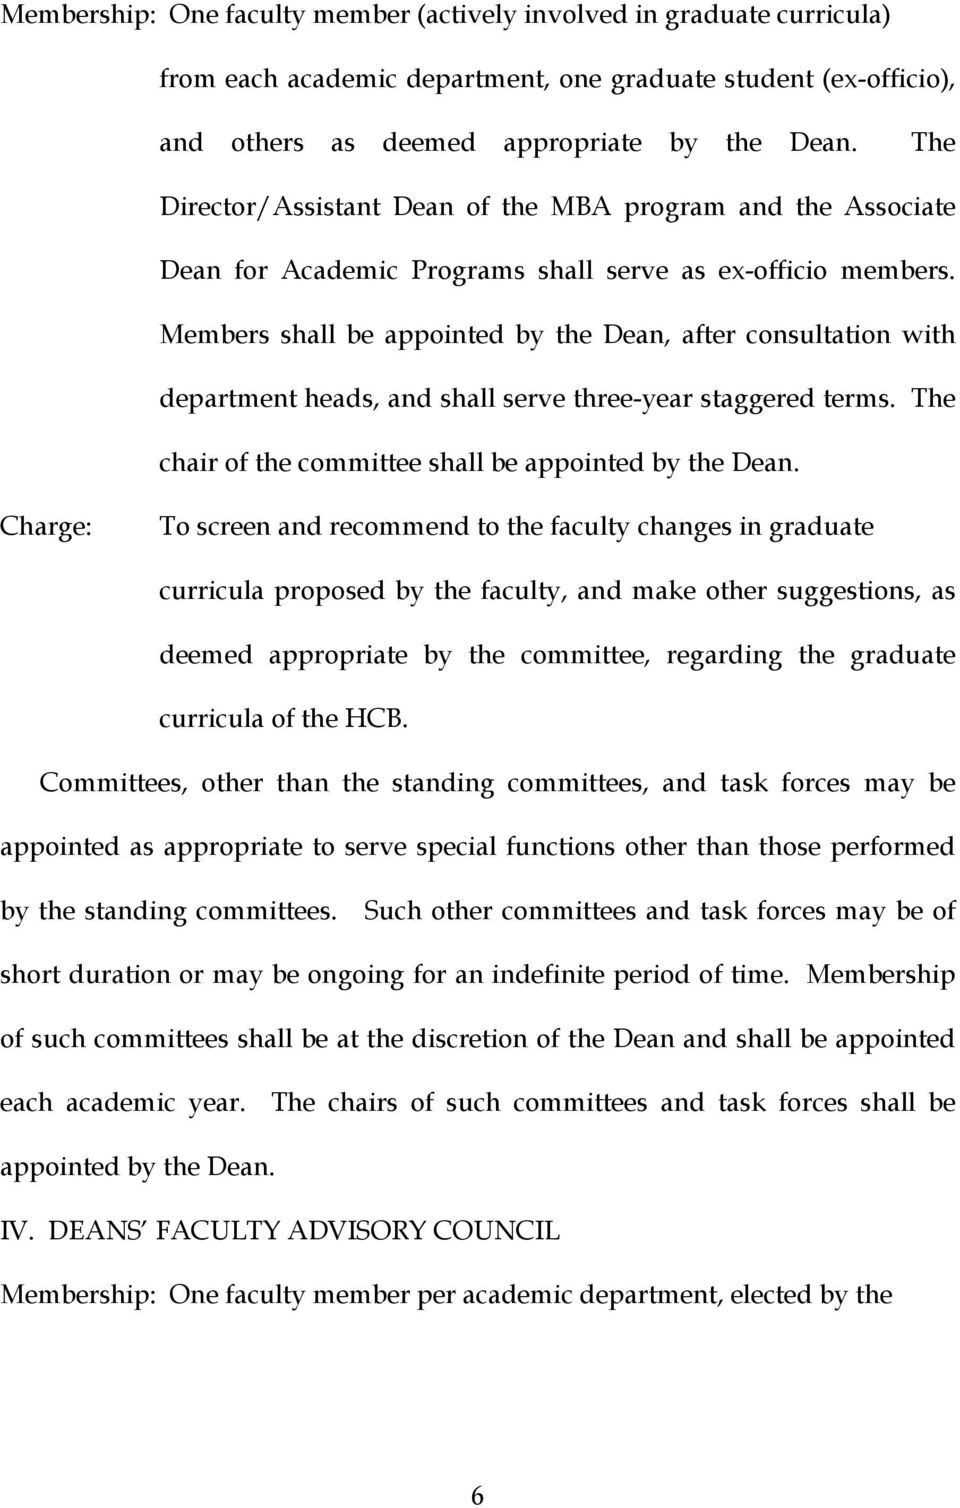 Members shall be appointed by the Dean, after consultation with department heads, and shall serve three-year staggered terms. The chair of the committee shall be appointed by the Dean.